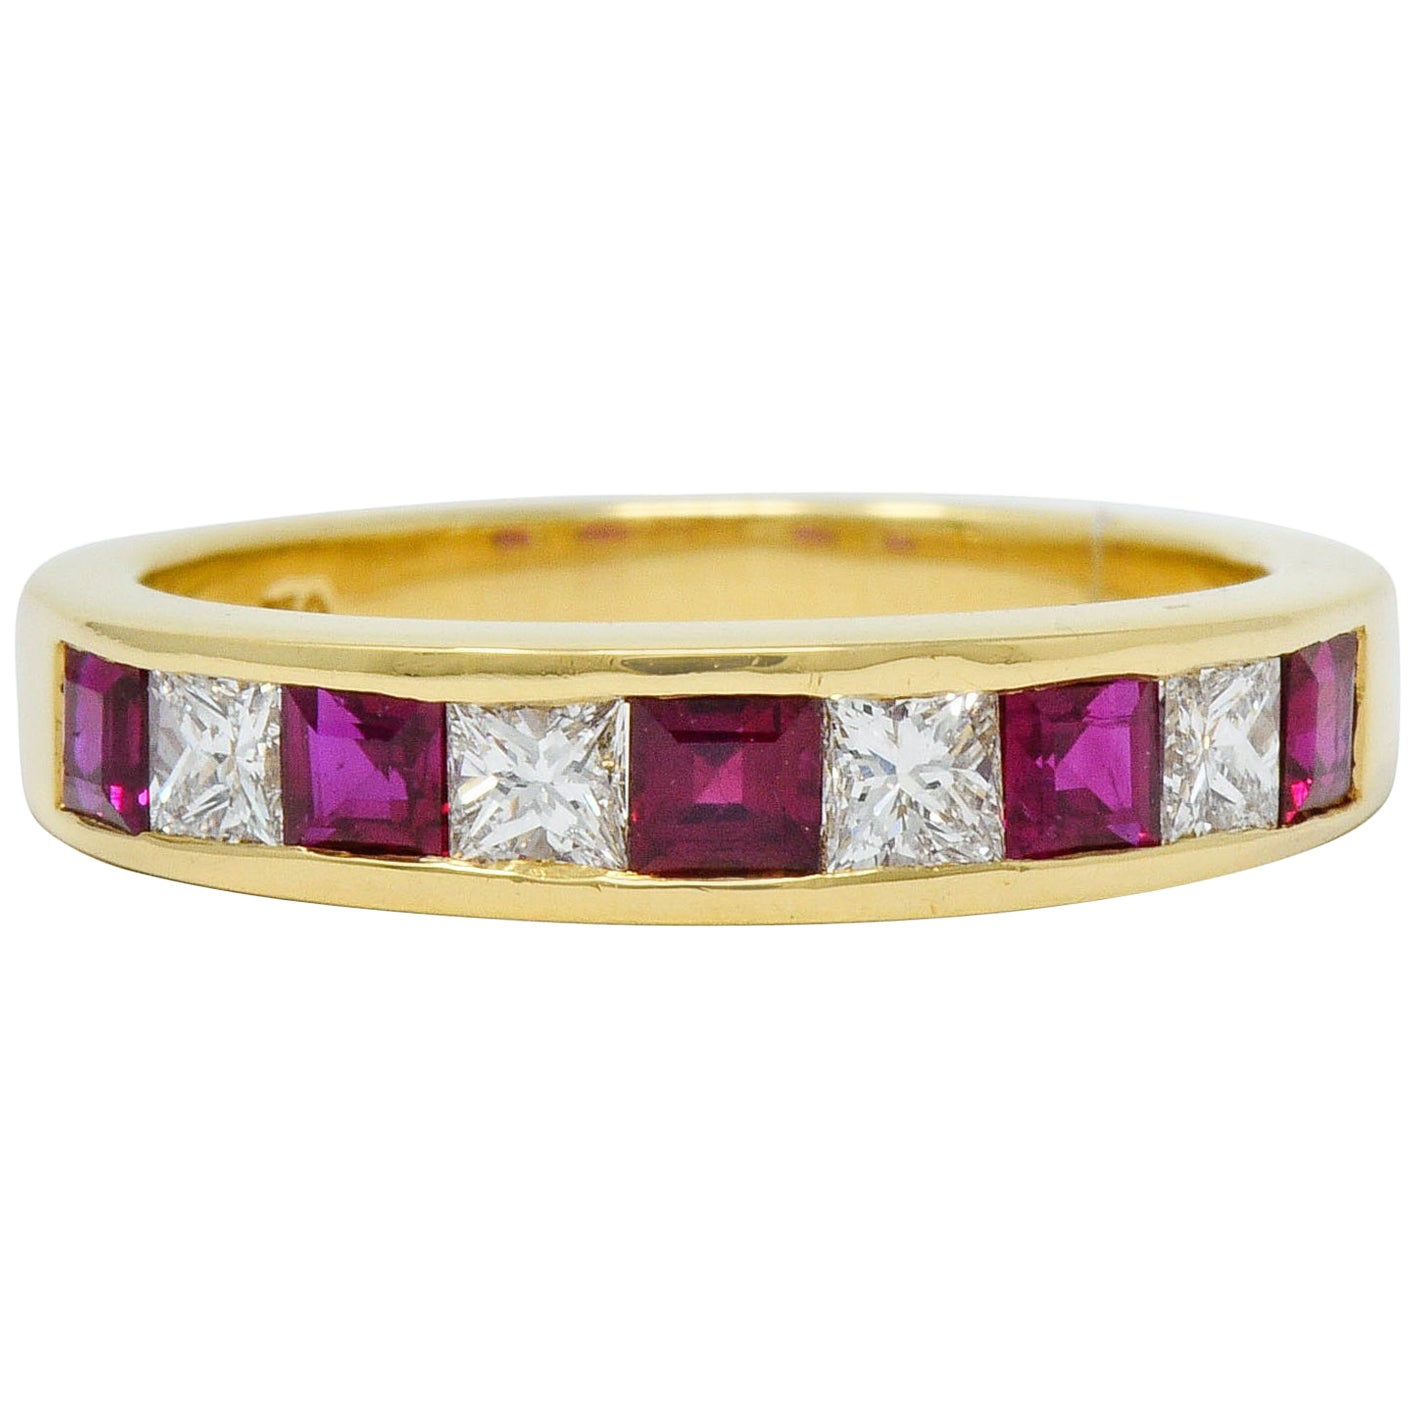 Tiffany & Co. Ruby Diamond 18 Karat Gold Channel Band Ring, circa 1990